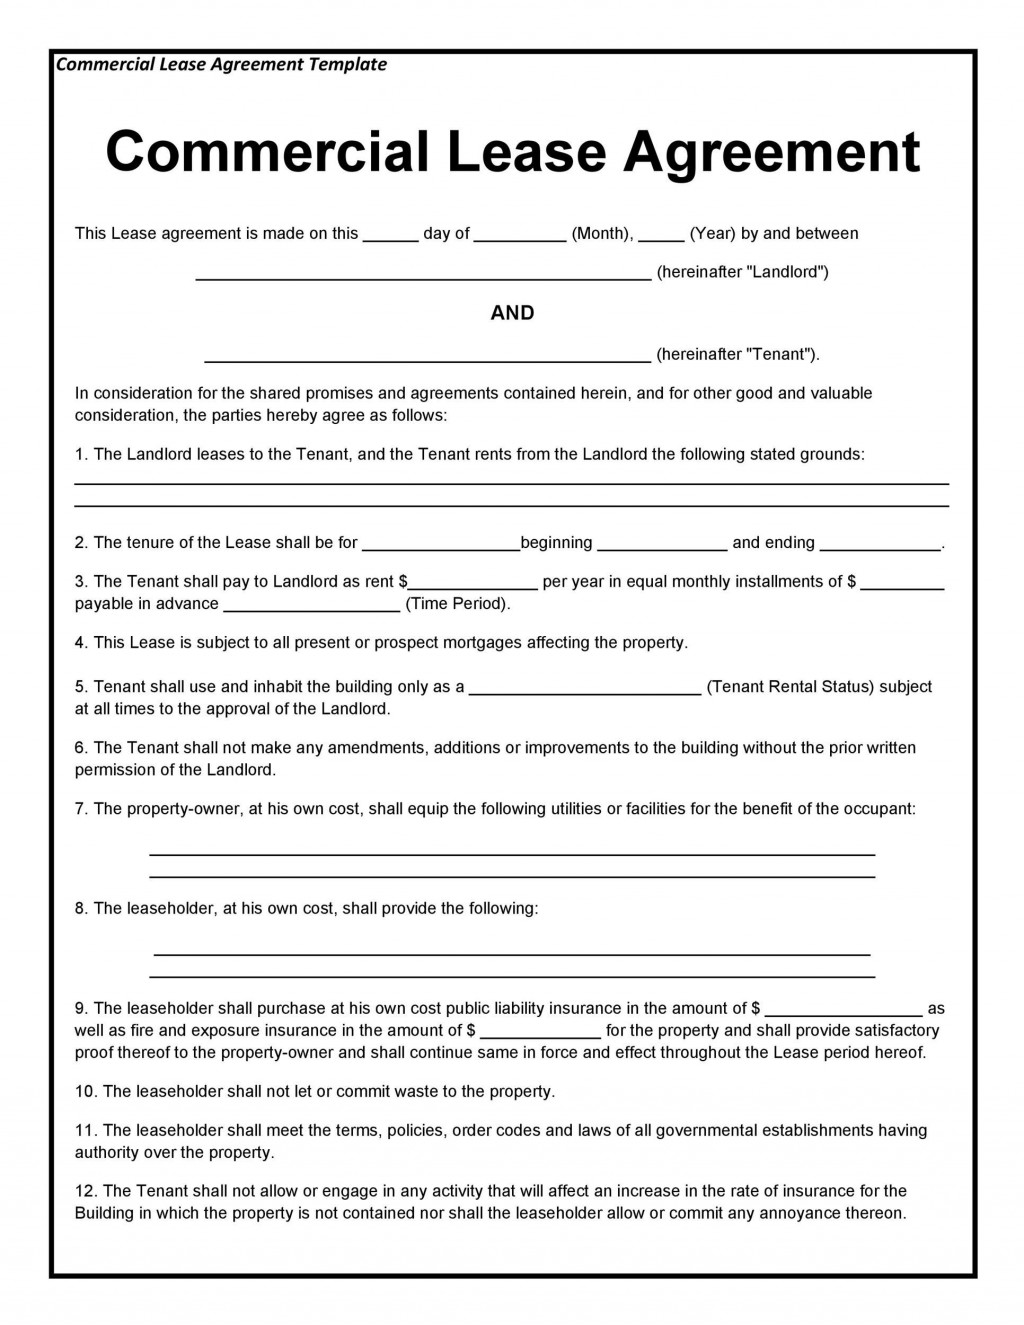 004 Unique Land Lease Agreement Template Image  Templates Uk Farm FreeLarge